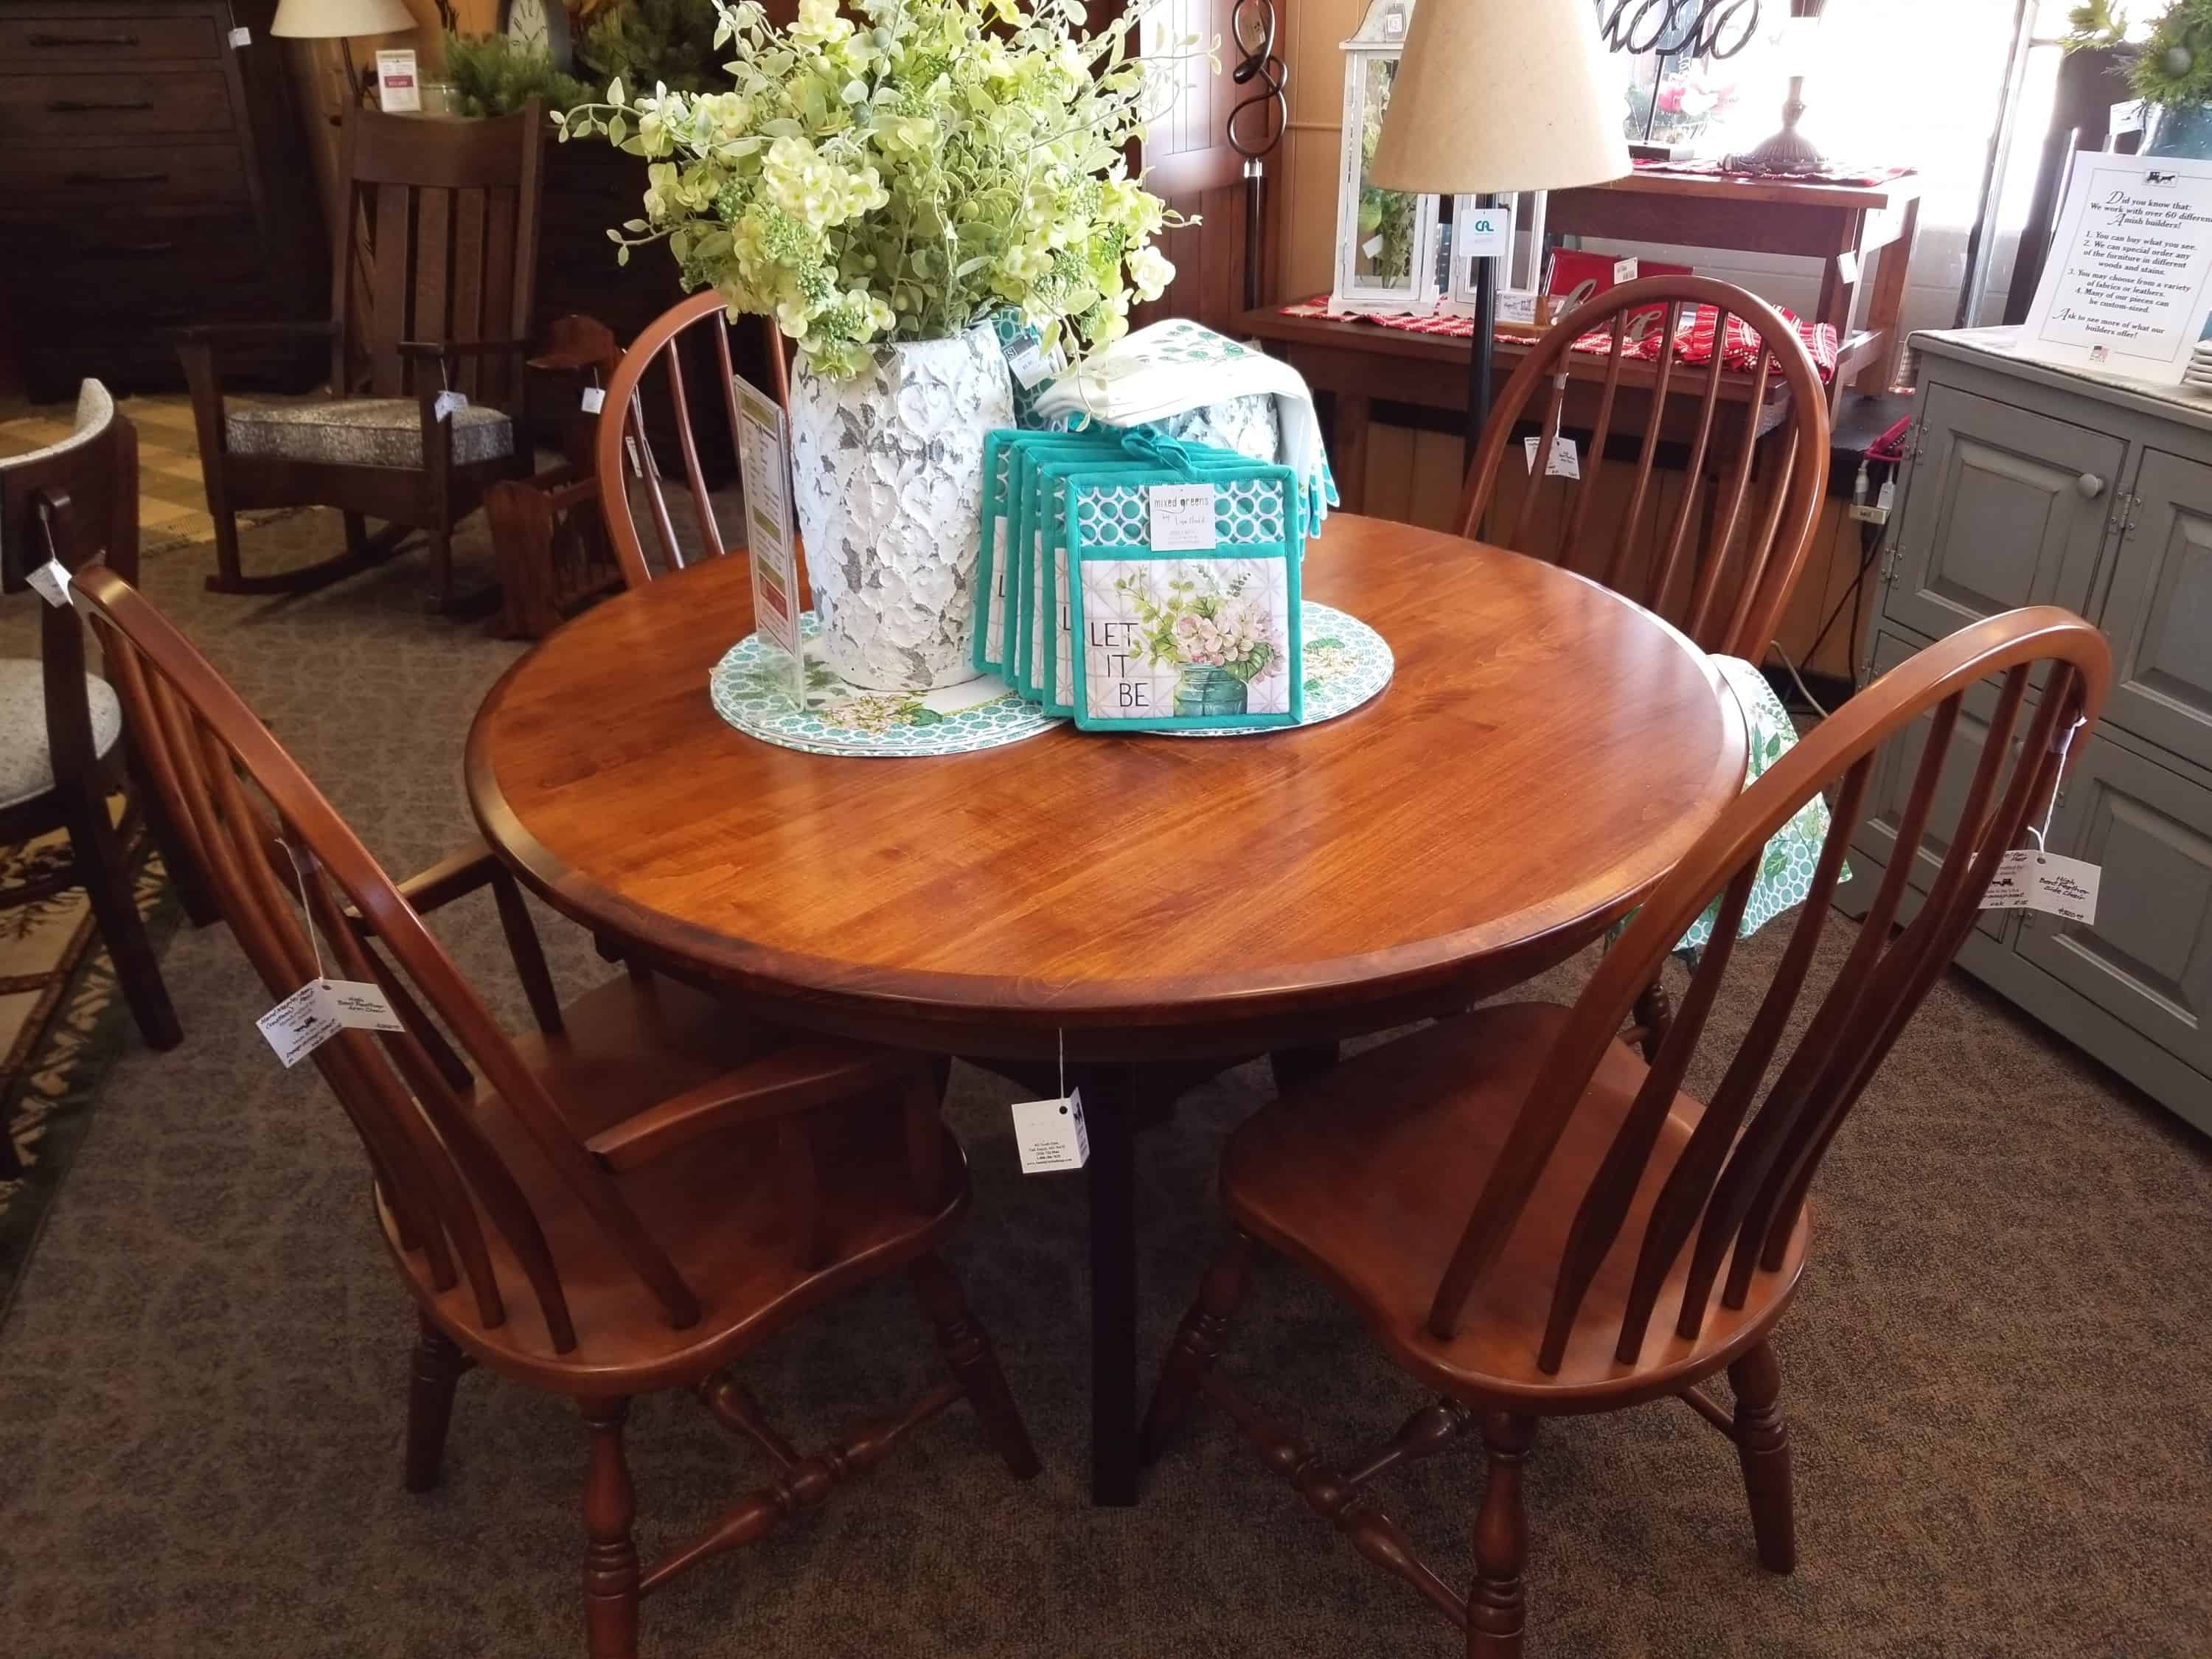 Imperial Dining Set Shown In Brown Maple With A Michaels Cherry Top Includes 4 Side Chairs And 2 Arm